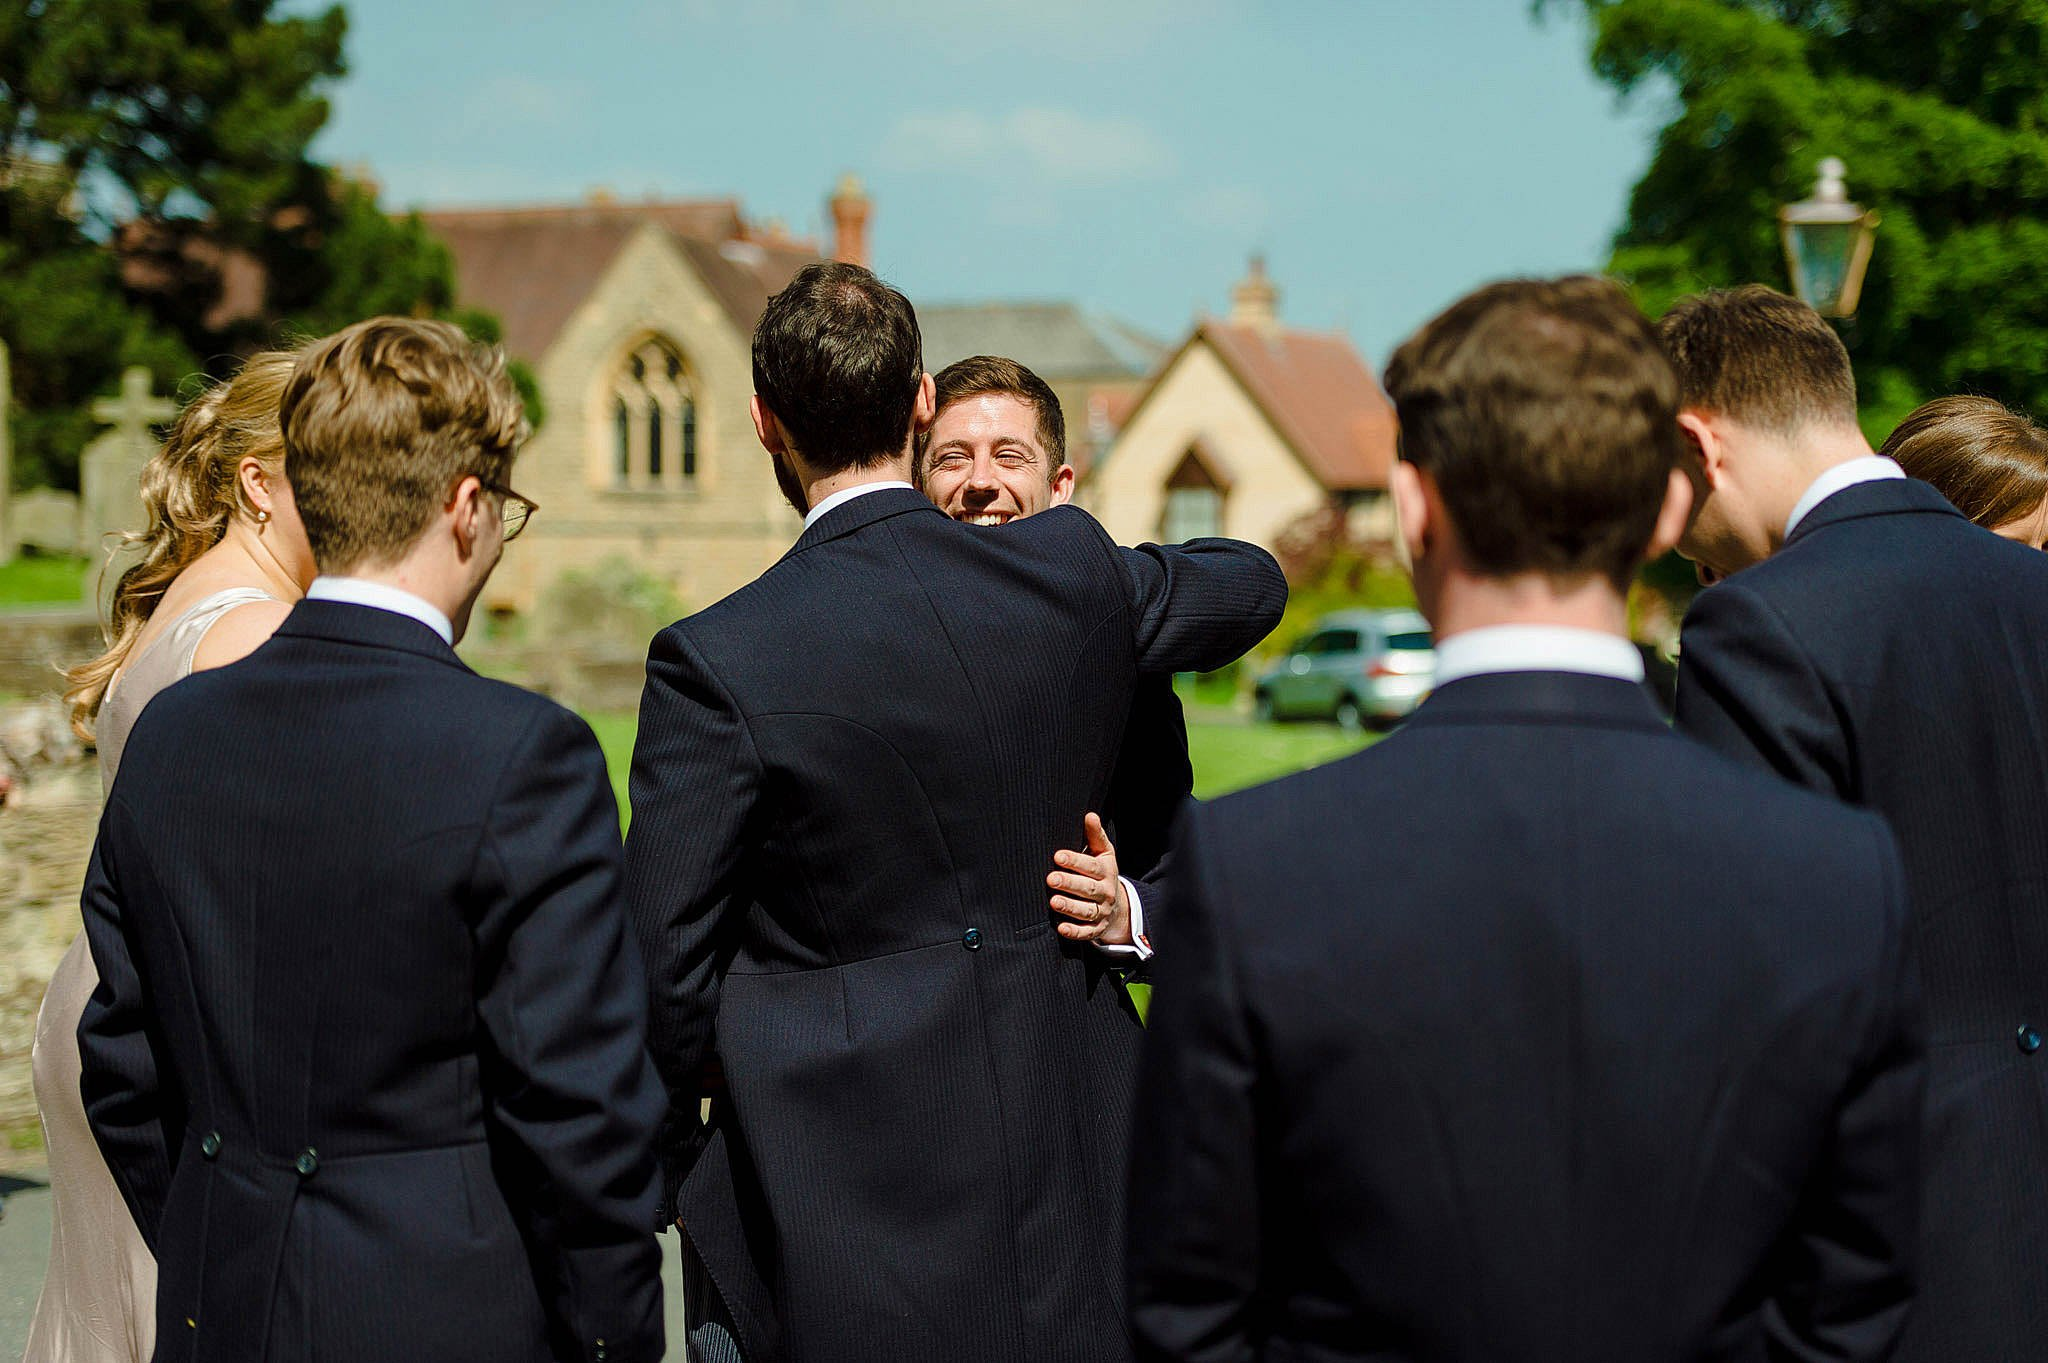 birtsmorton court wedding photography 34 - Birtsmorton Court wedding photography - Lizzie + Lloyd